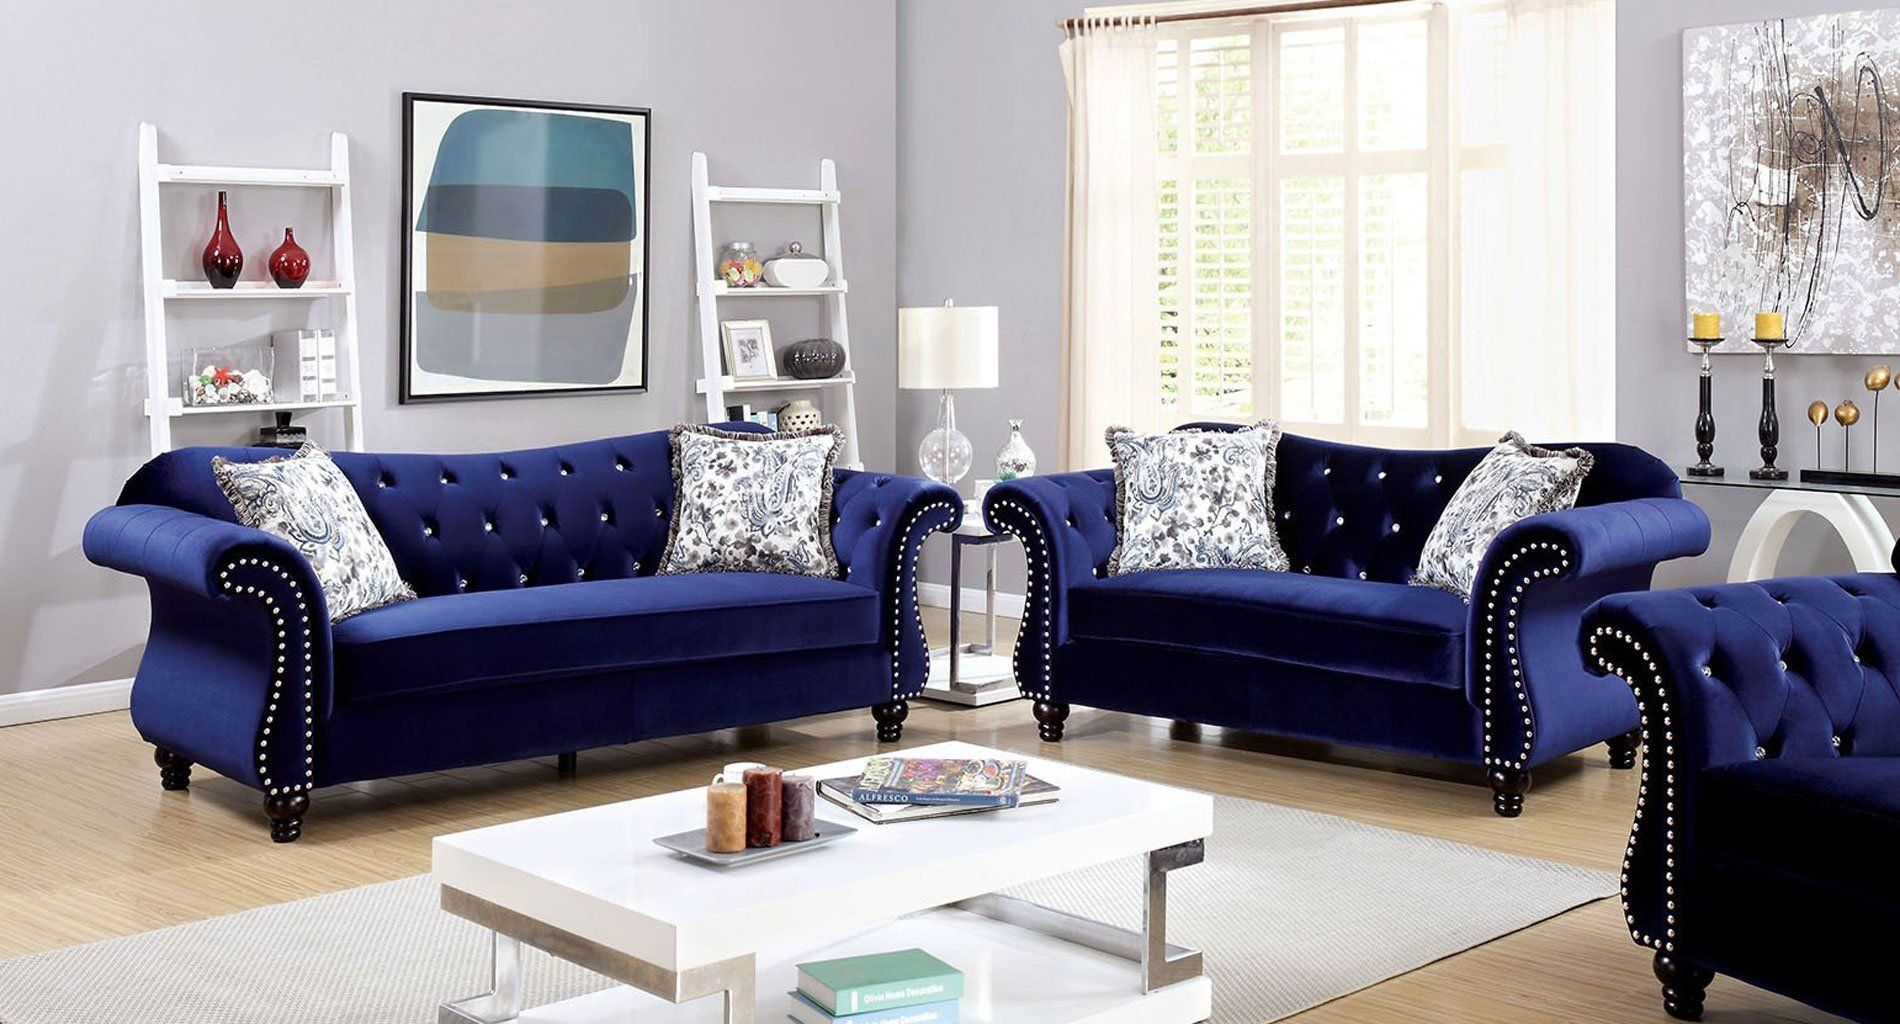 Jolanda Living Room Set (Blue) in 2019 | Living room sets ...